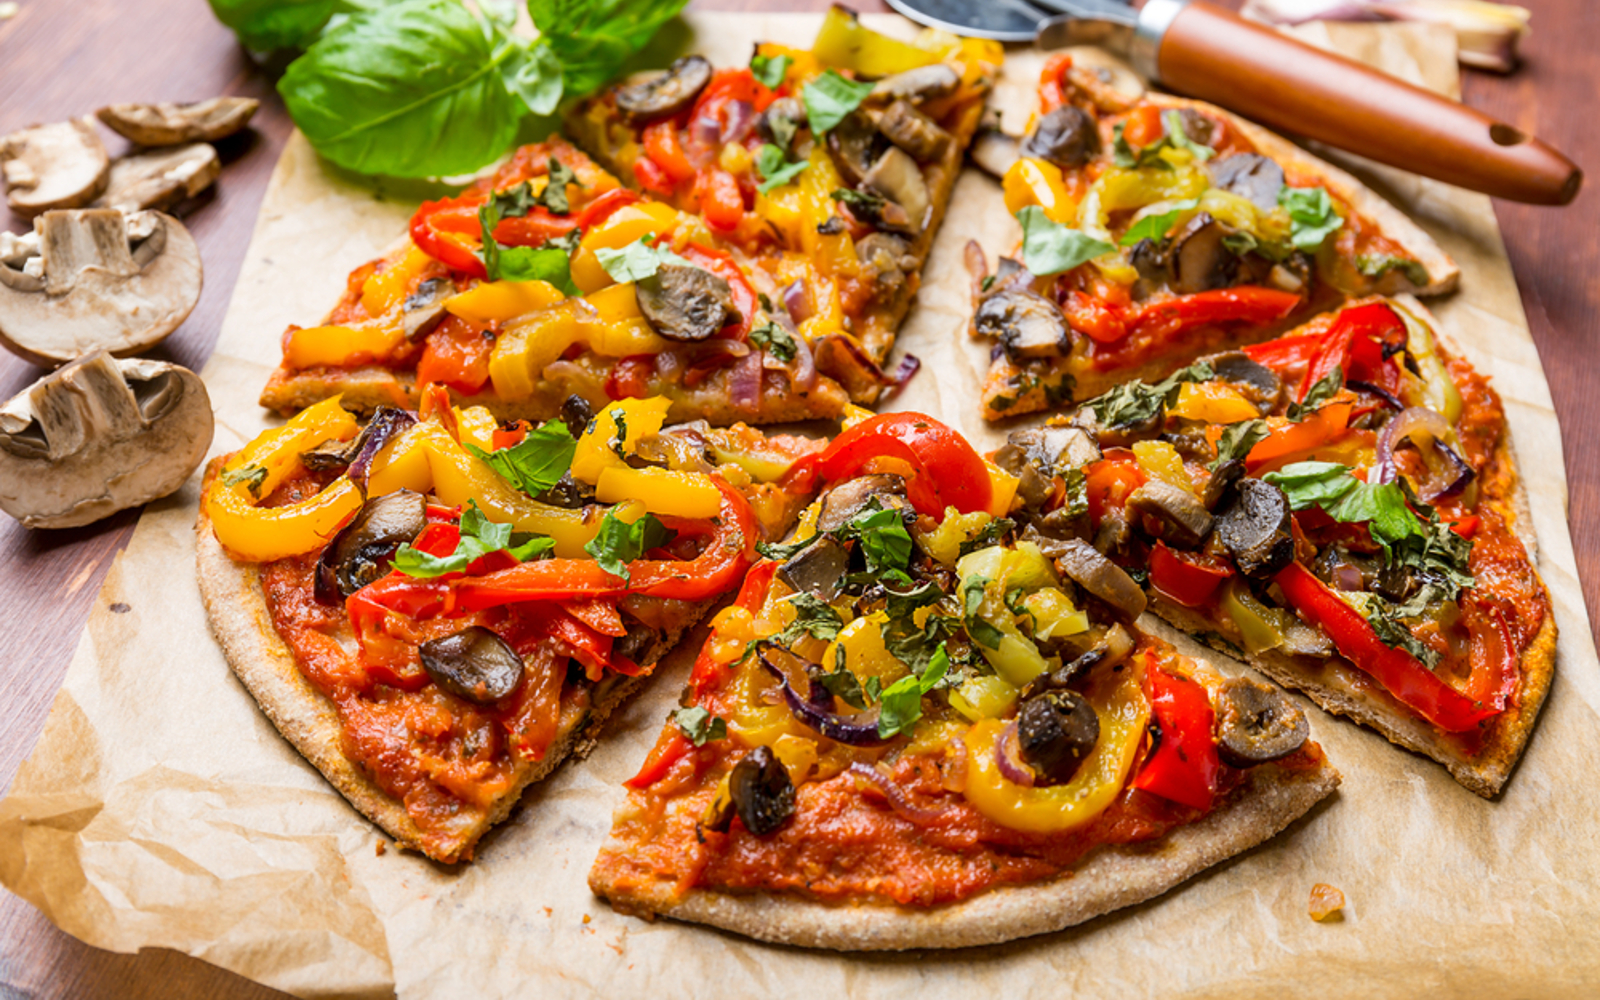 Vegan healthy Pizza with mushrooms and peppers